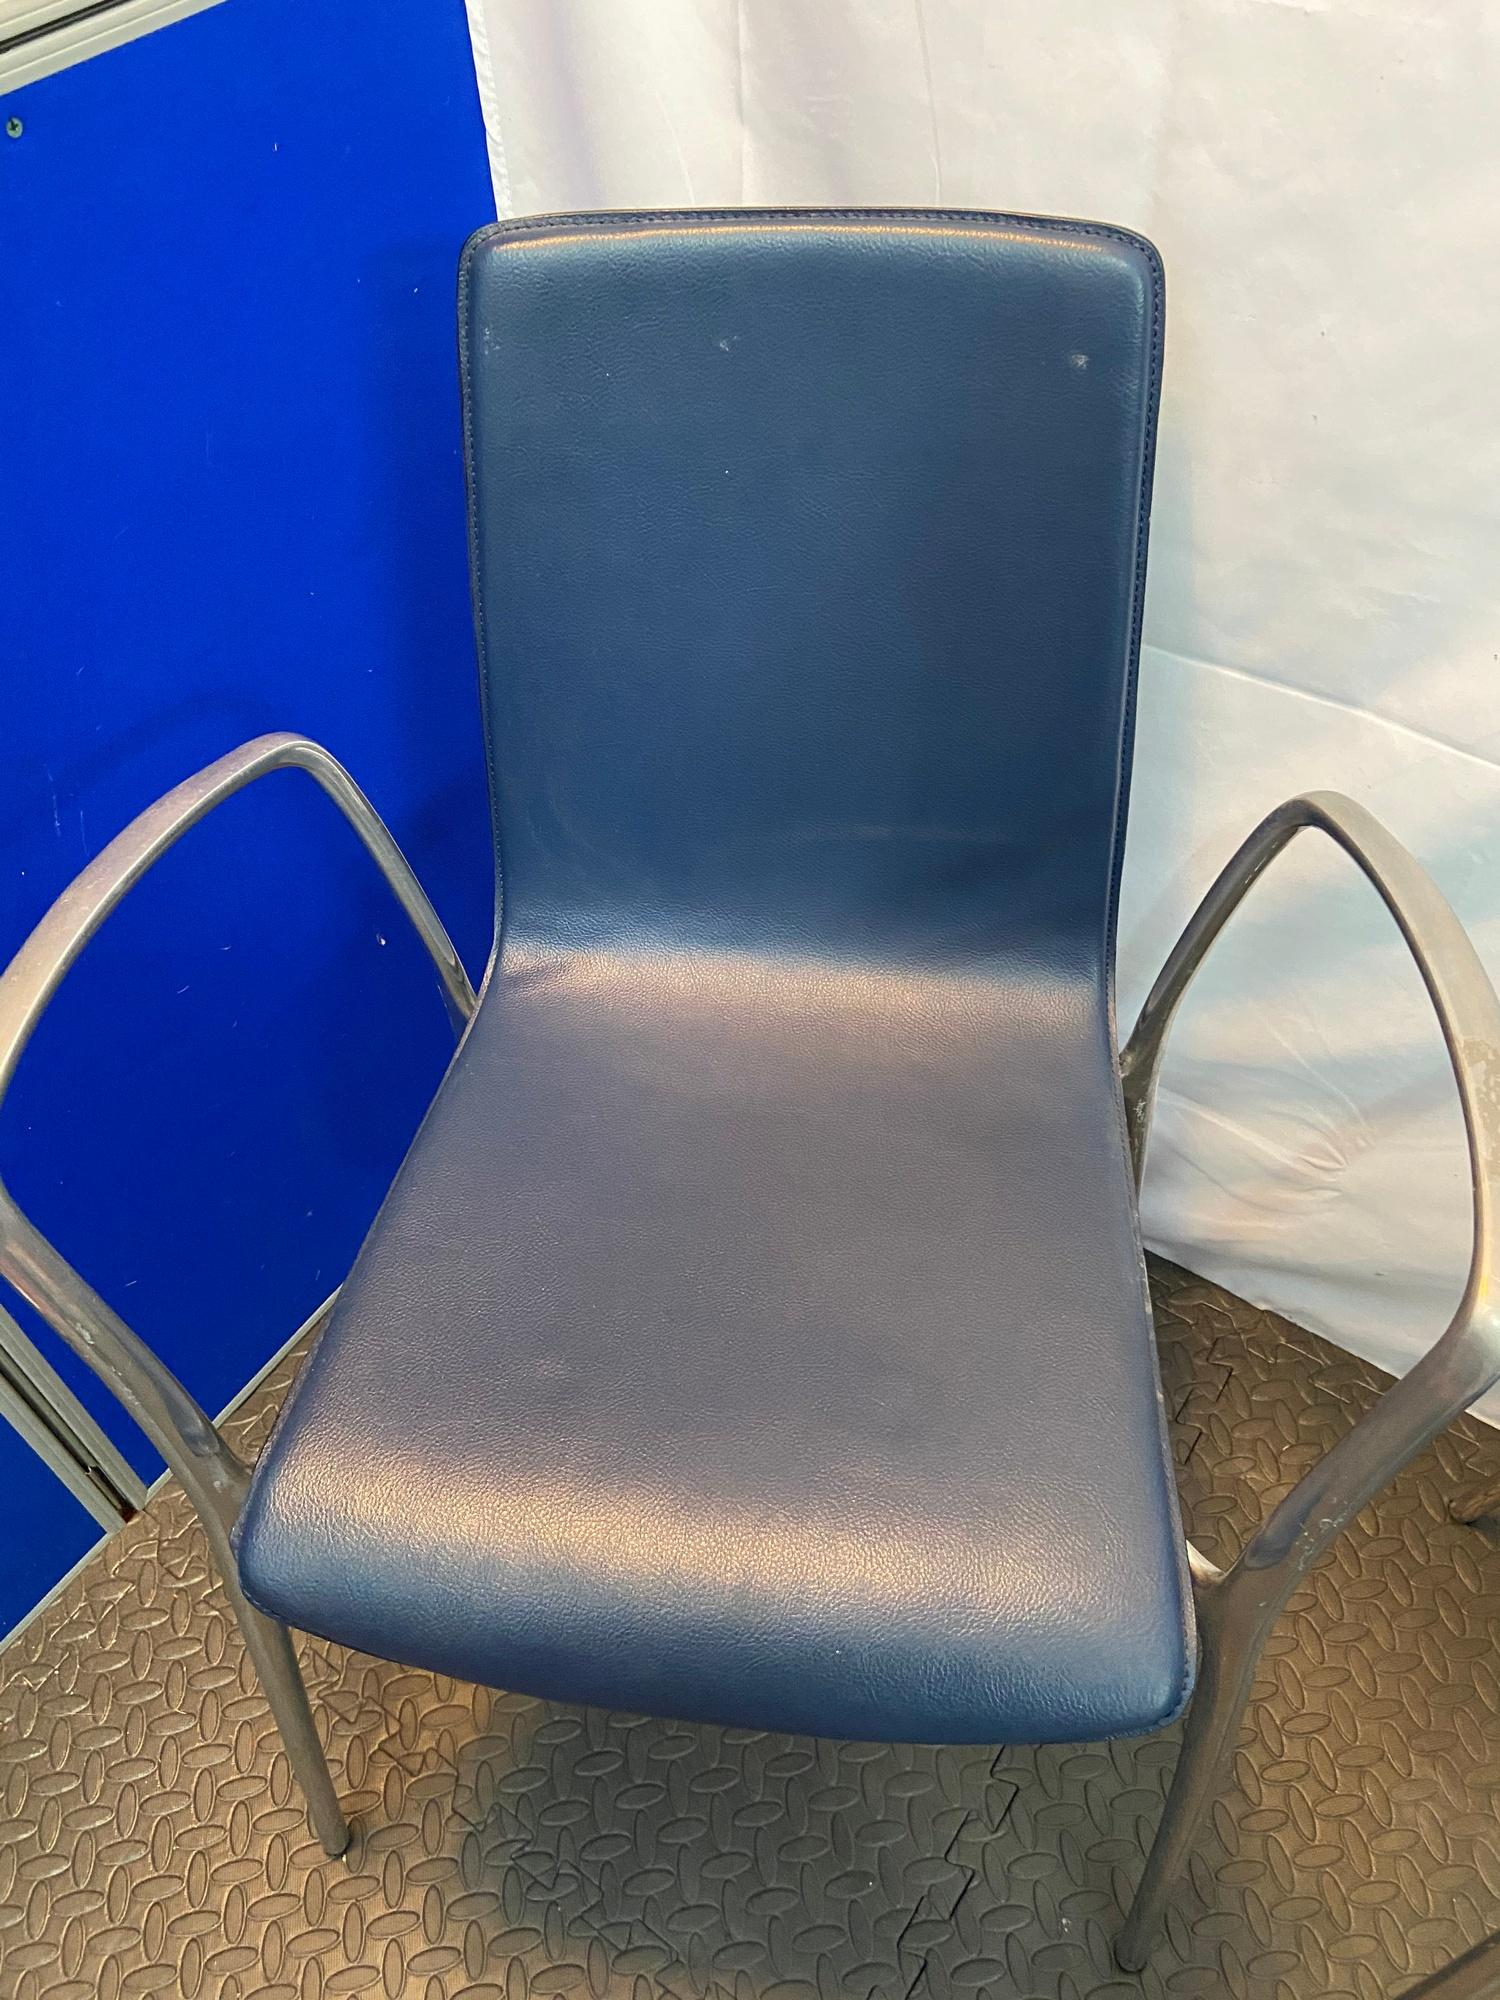 A Set of four Spanish designer Akaba dining chairs designed by Jorge Pensi. Blue leather material - Image 3 of 6